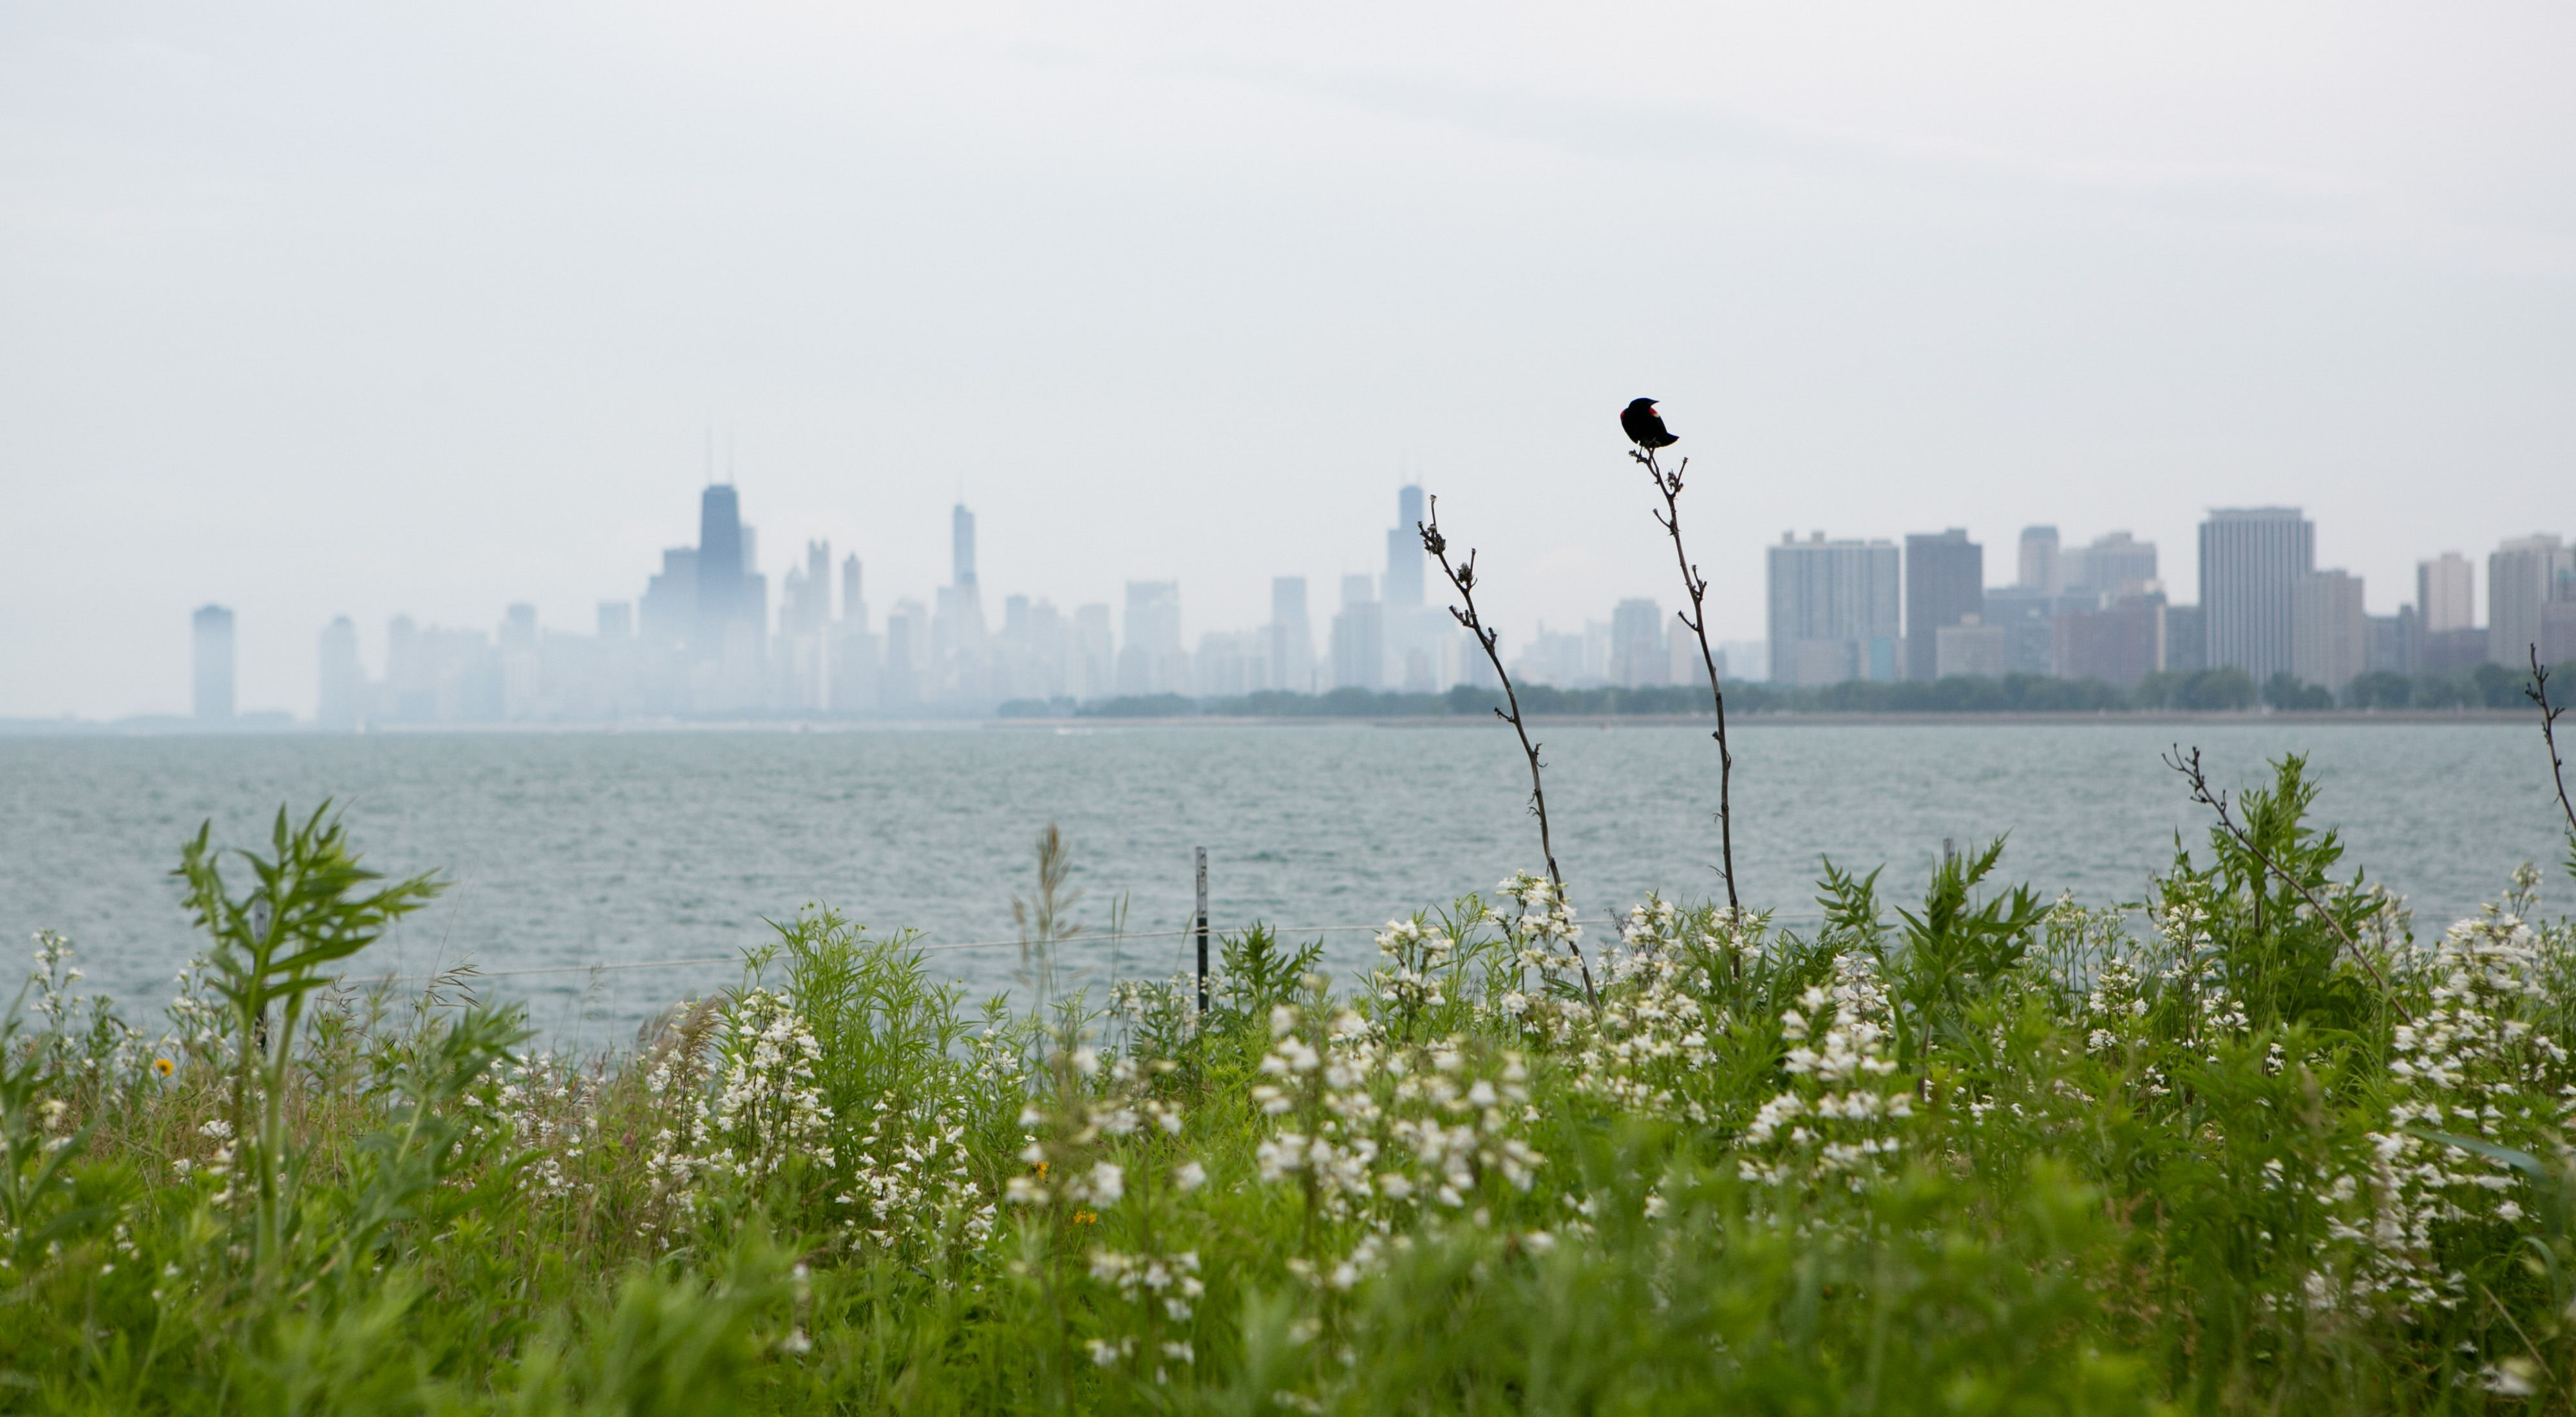 at the Montrose Harbor bird sanctuary during a stewardship day on Saturday, June 22, 2013.